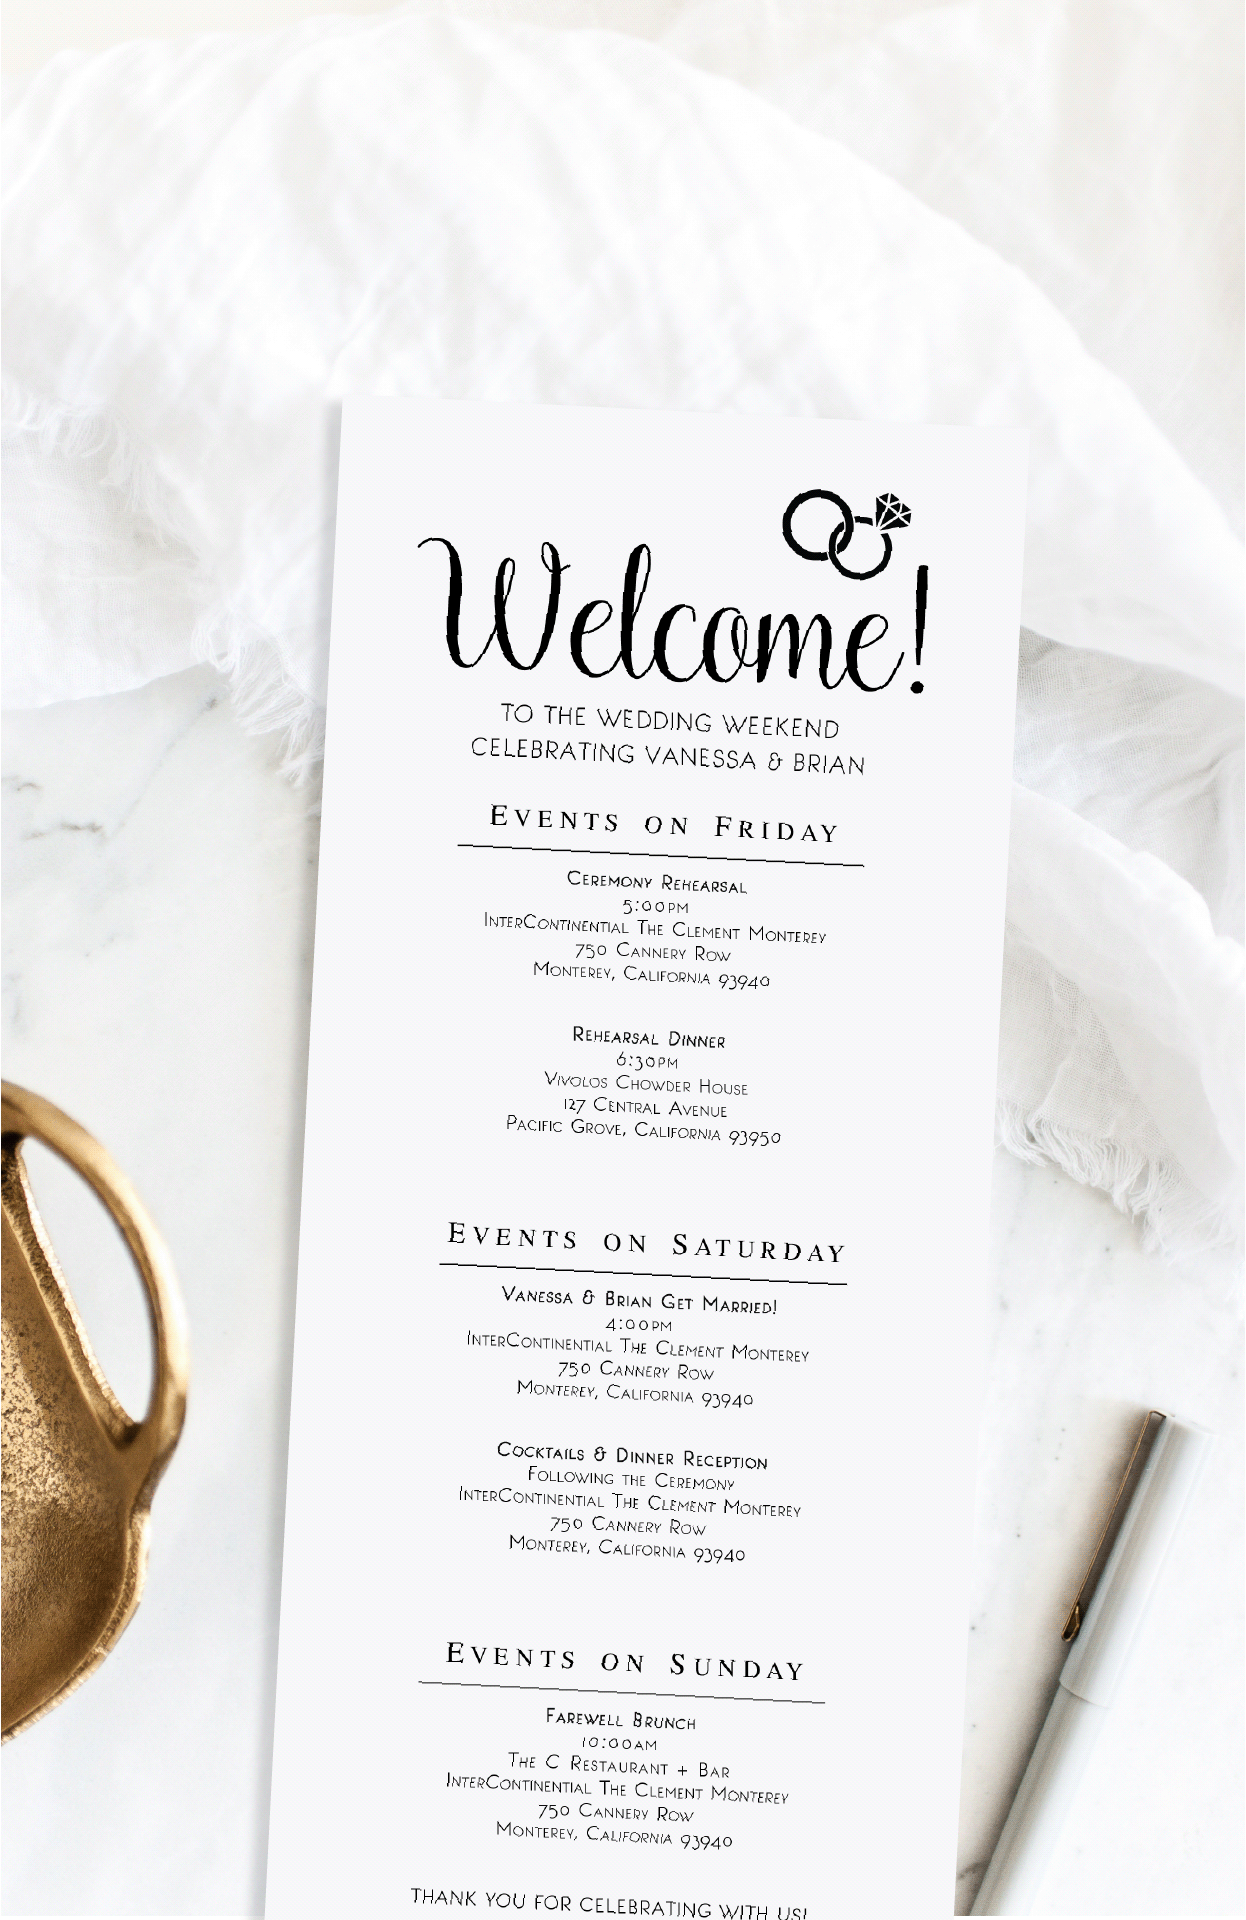 Welcome Card Mockup.png